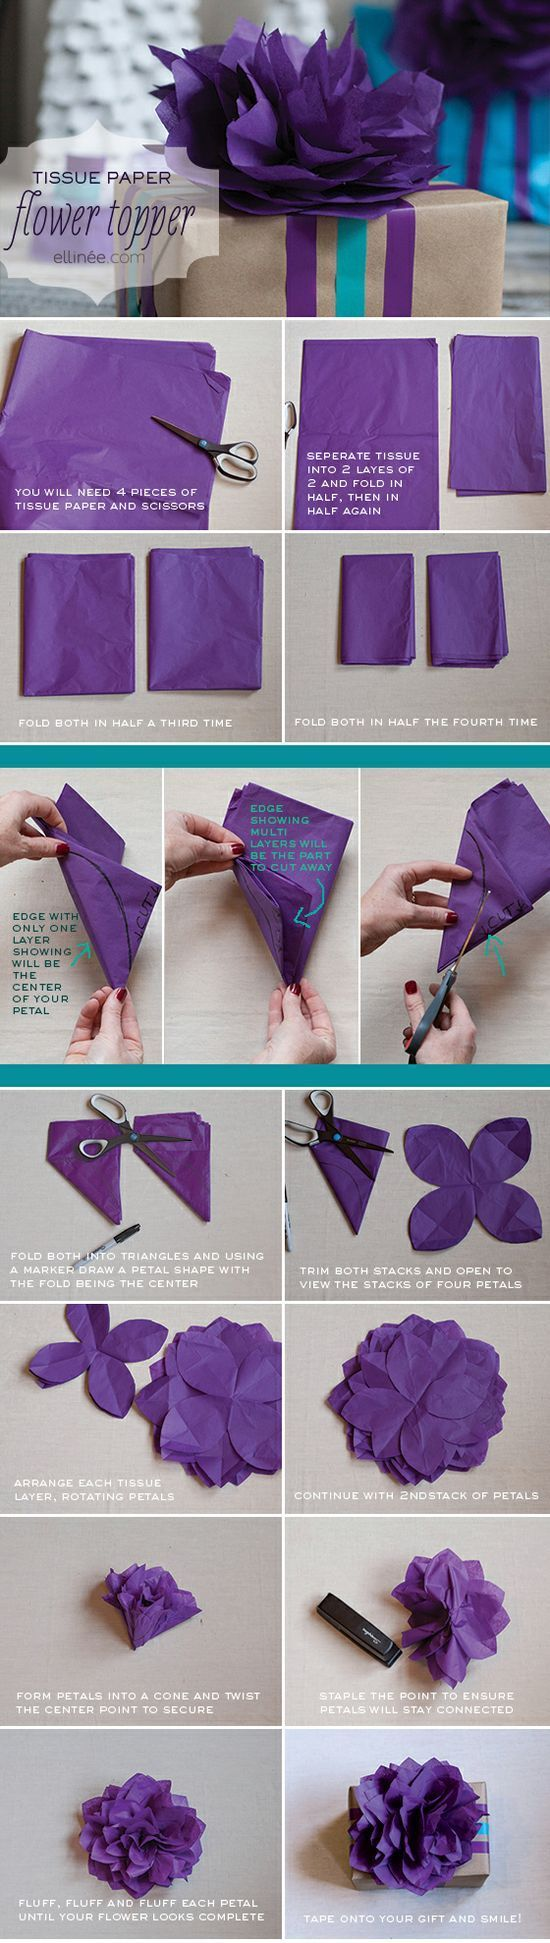 how to wrap flowers in tissue paper Suppliesscissors6 strips raspberry-colored, yellow, or fuchsia tissue paper how to make paper flowers: peony pinterest facebook more comment twitter google+ attach with tape, wrapping to about 1 inch below the pom-pom's base.